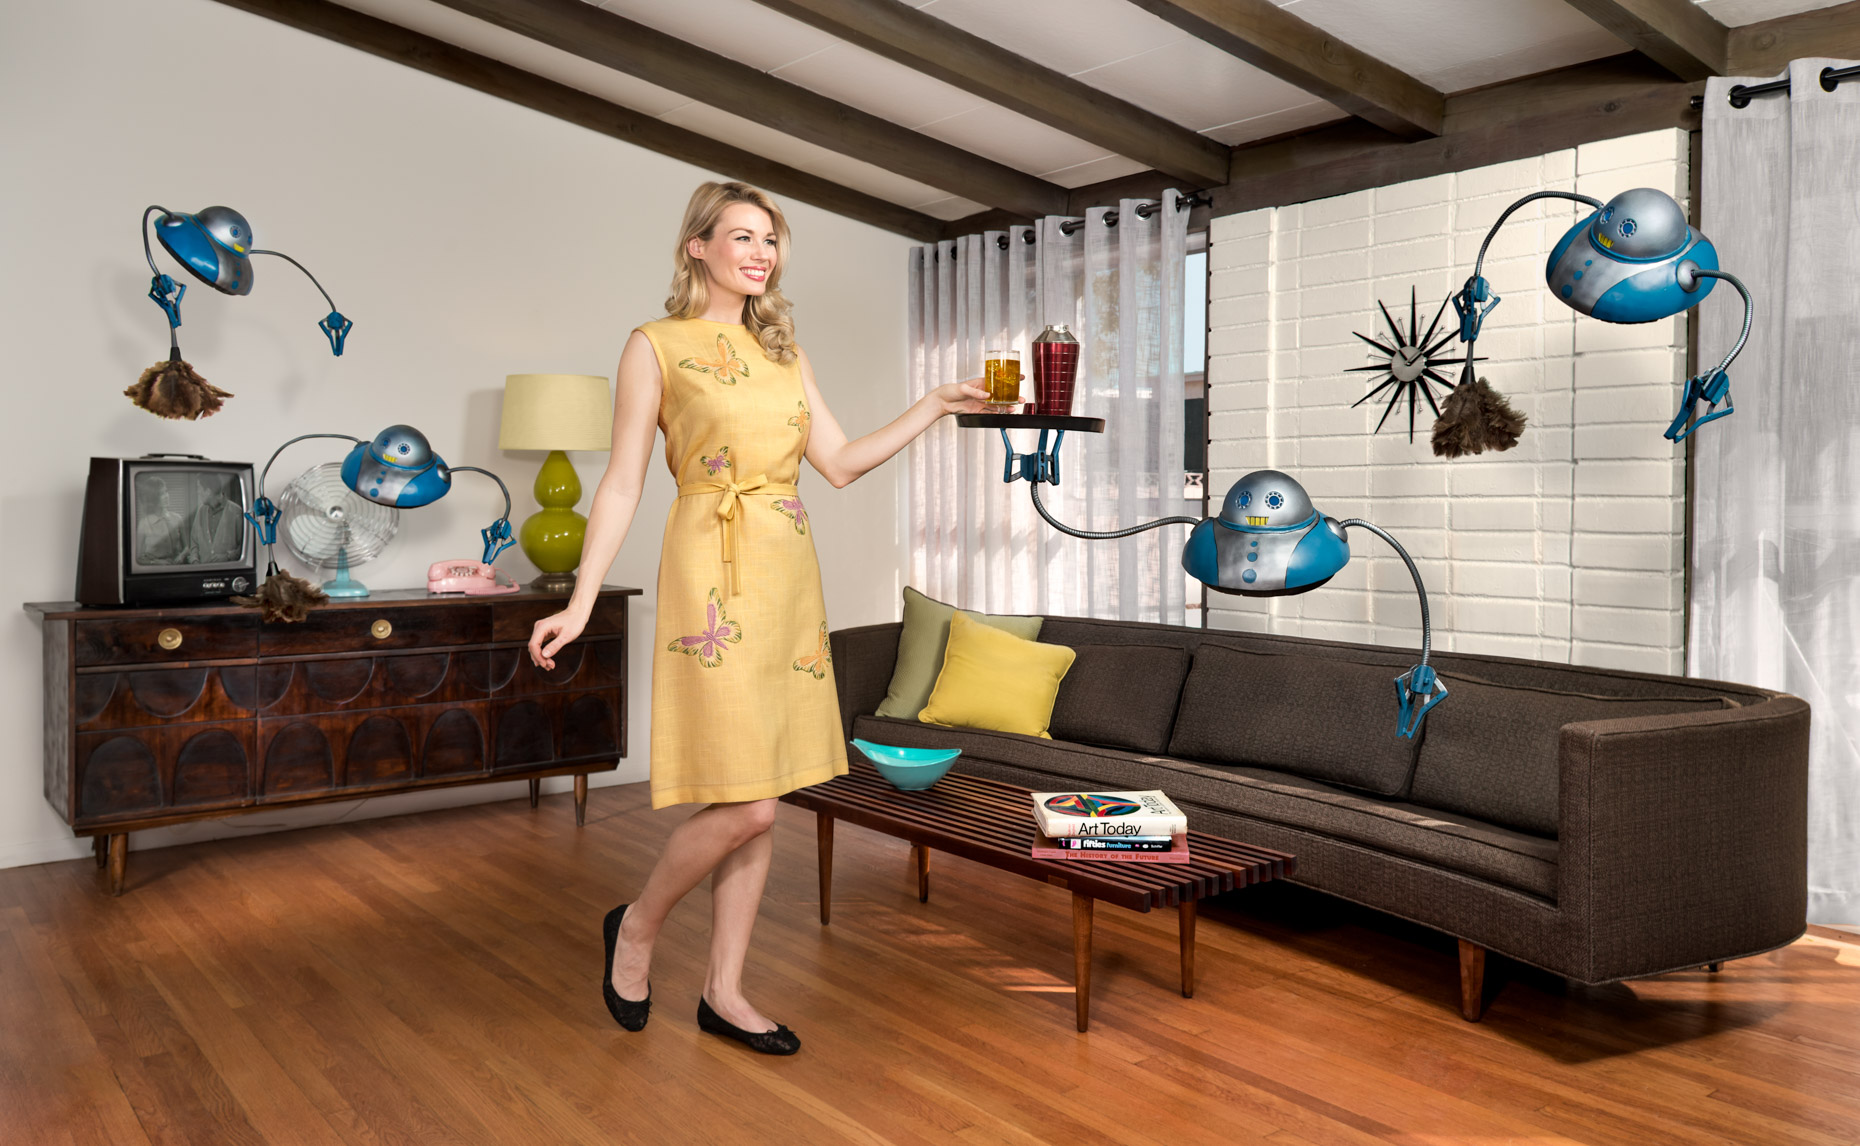 midentury-futuristic-lady-in-living-room-with-cleaning-robots